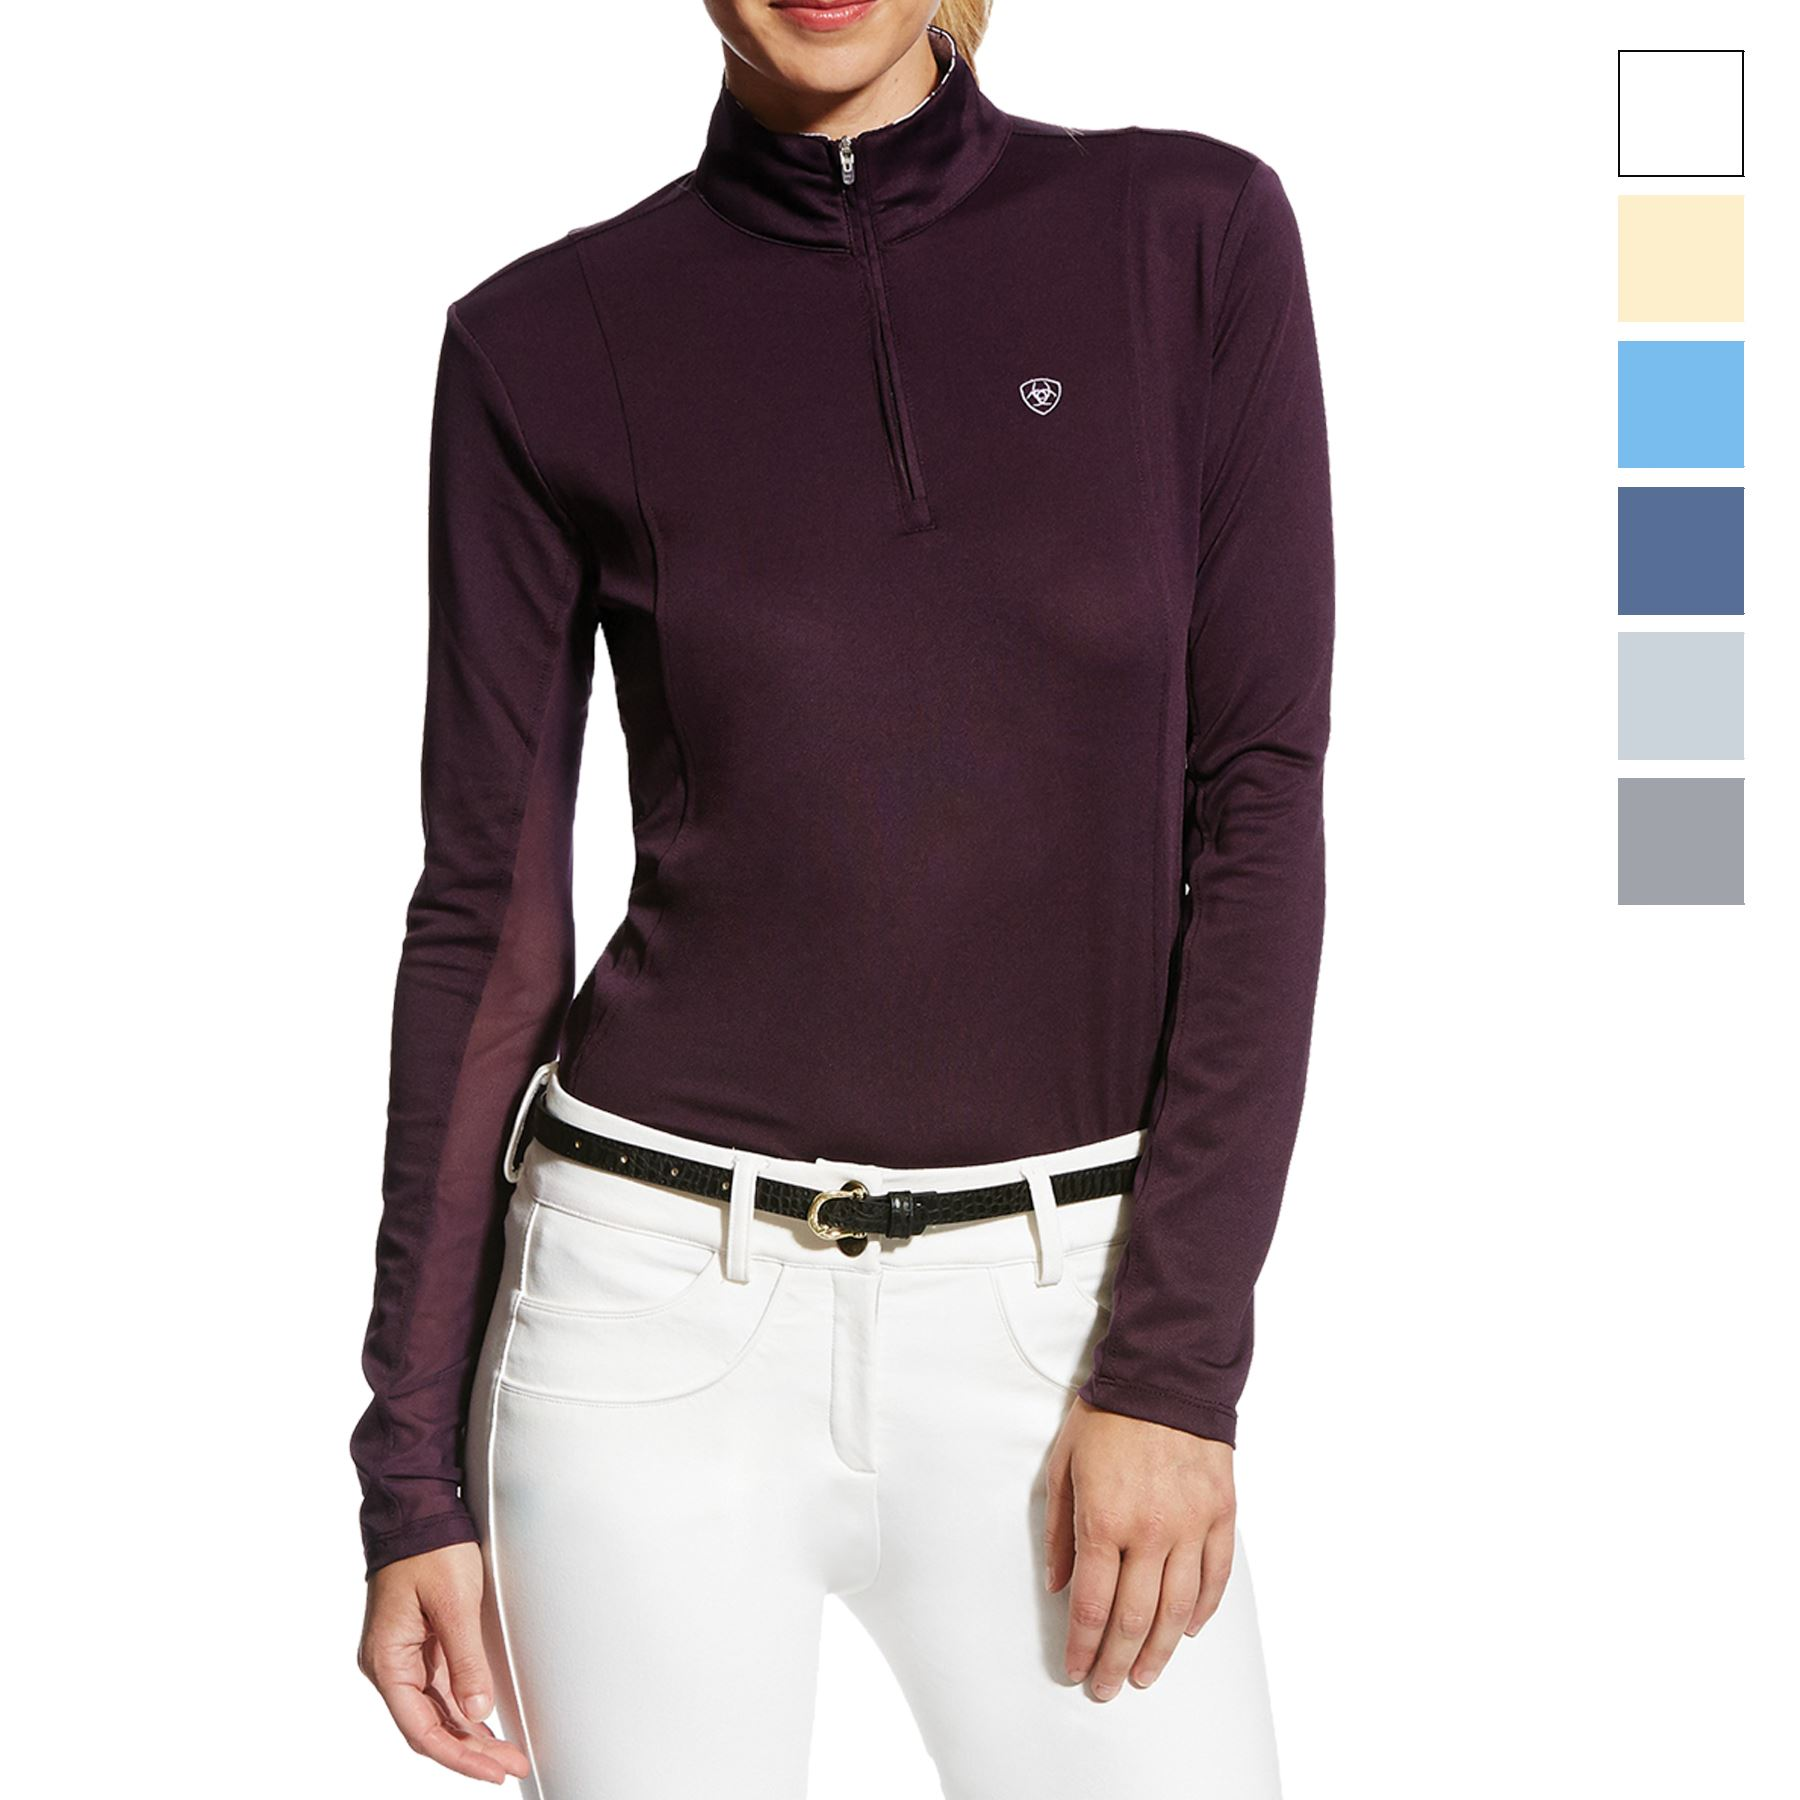 Ariat Ladies Sunstopper 1/4 Zip Shirt